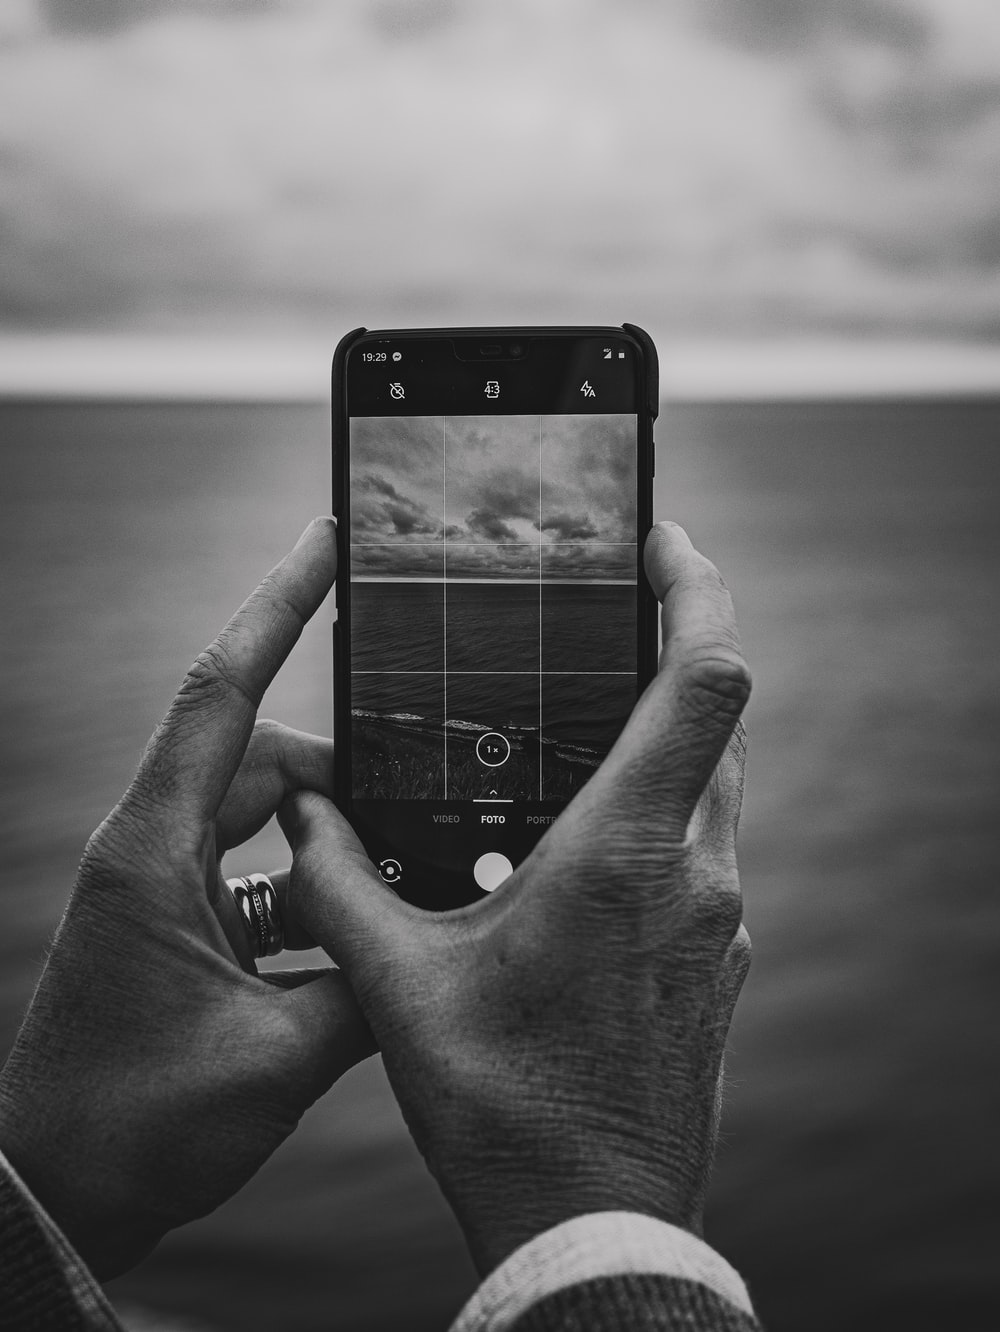 grayscale photography unknown person holding smartphone